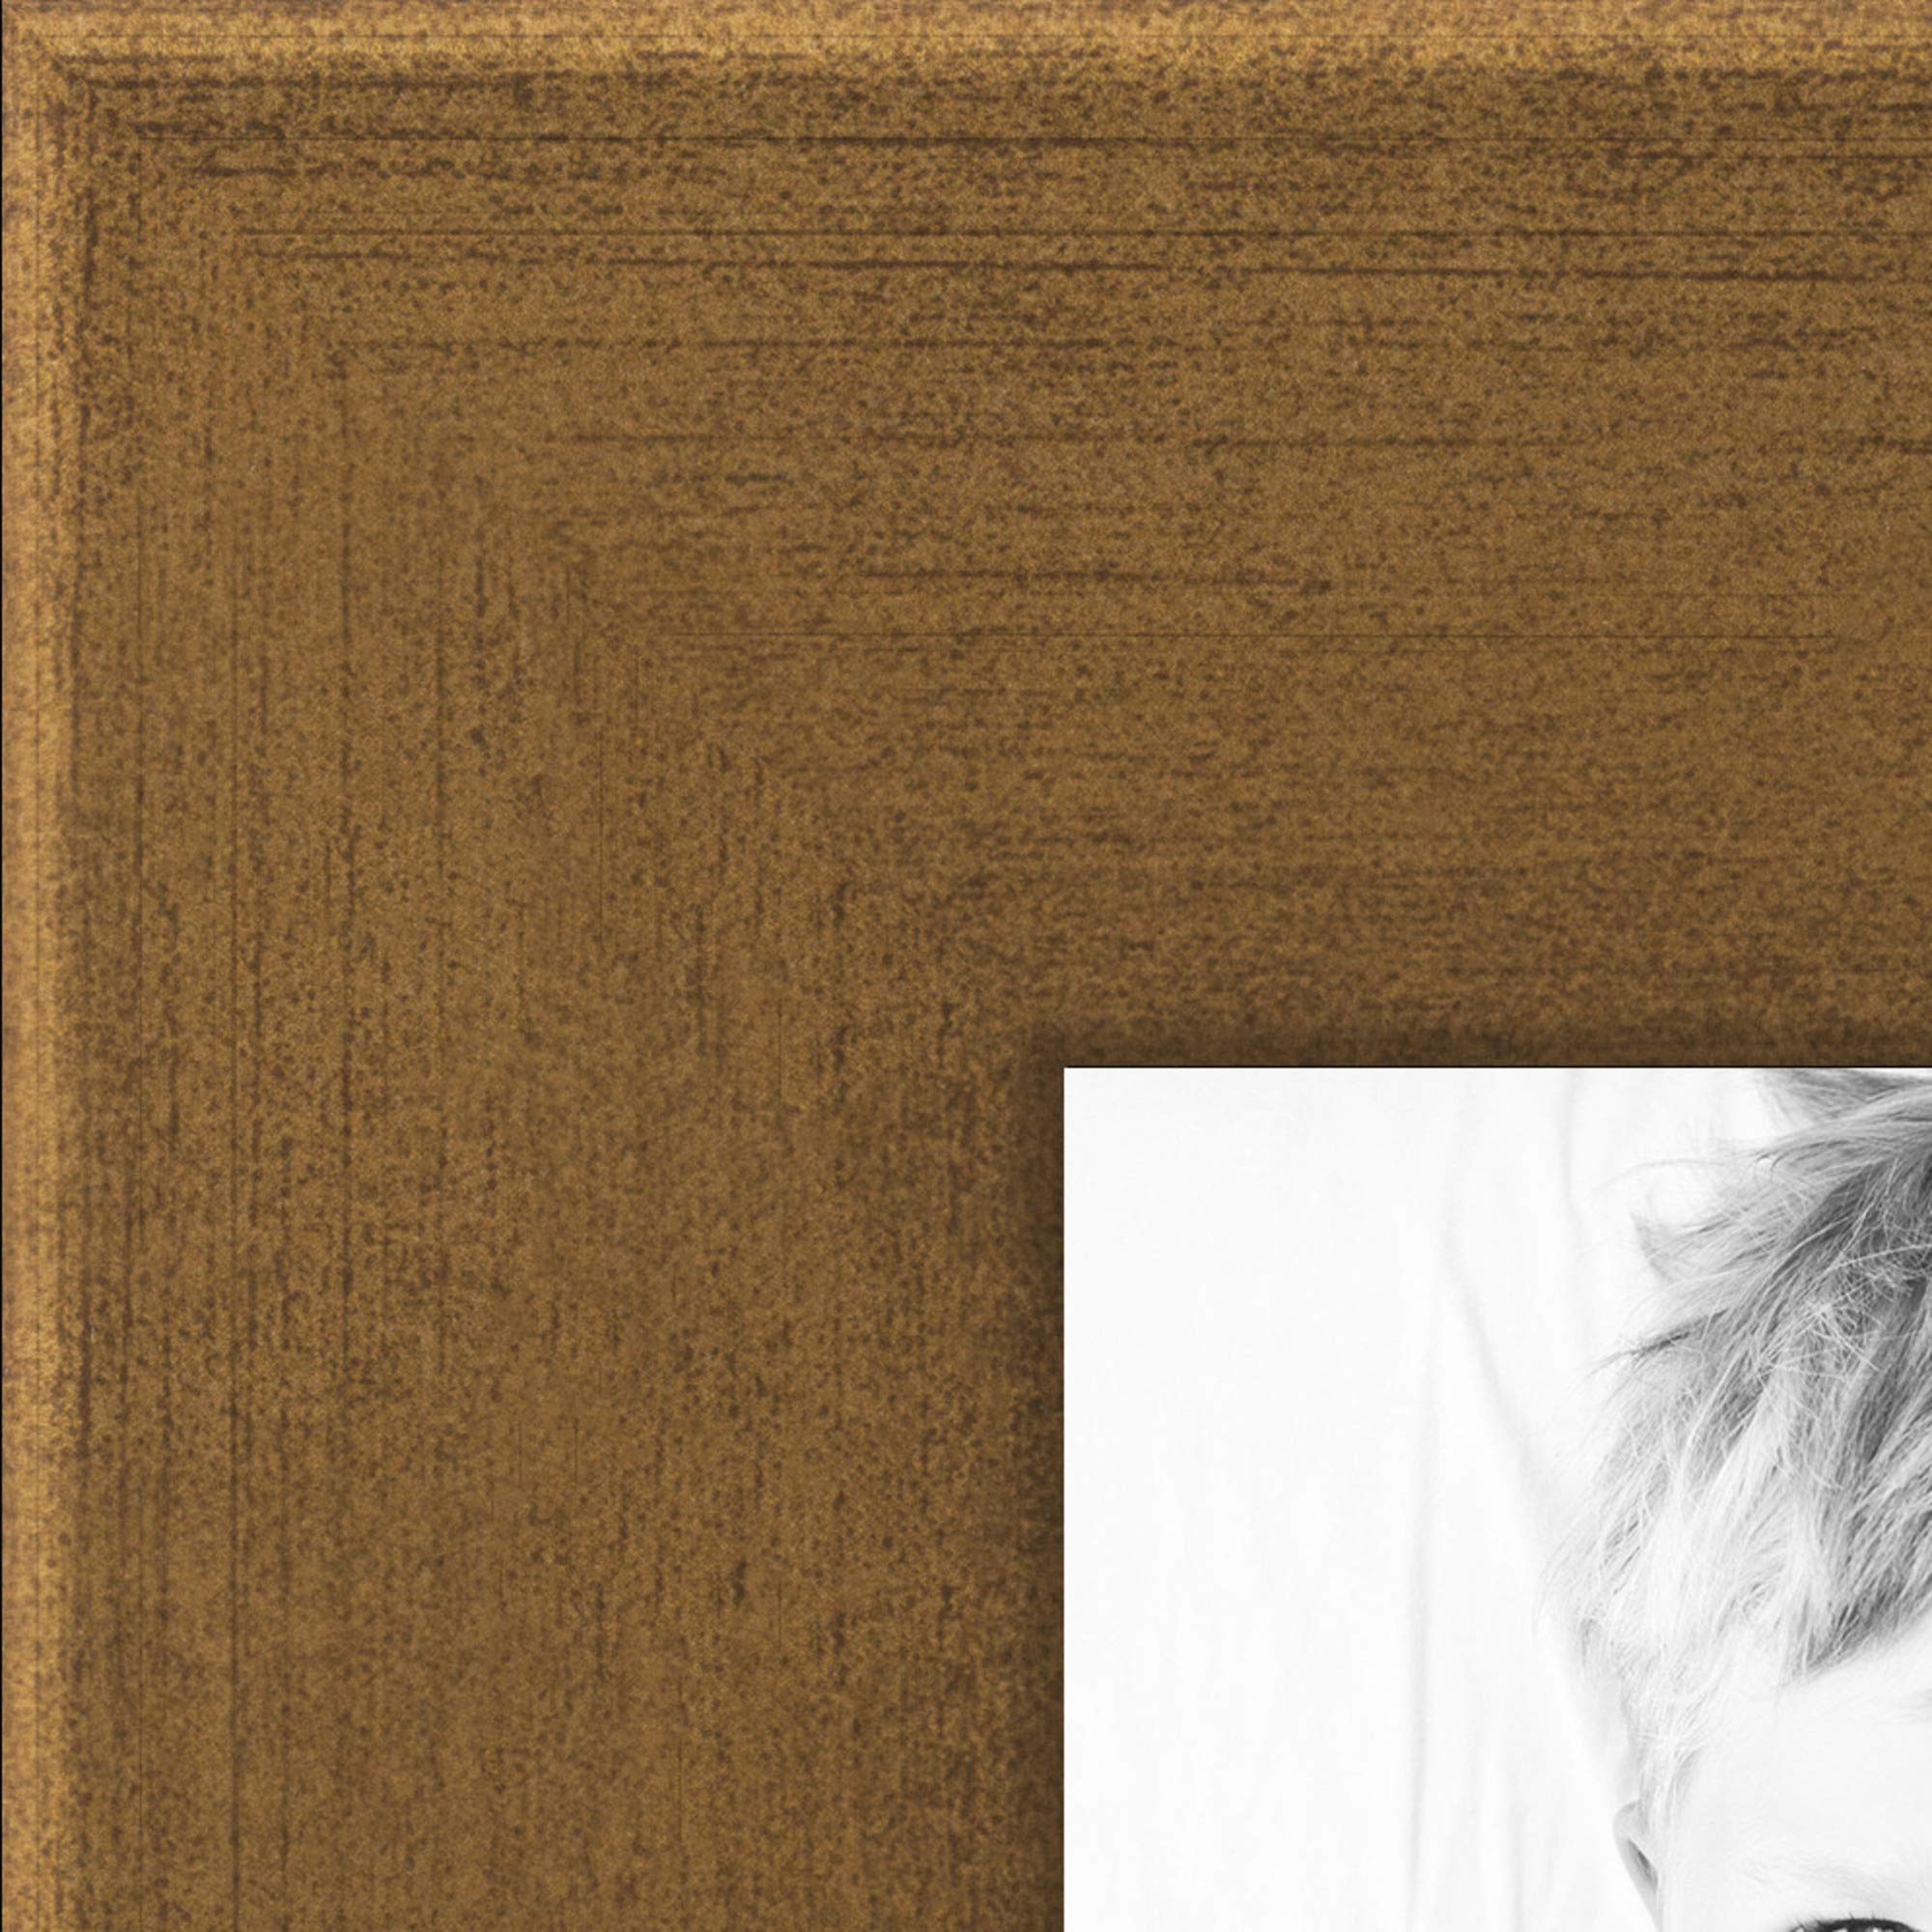 ArtToFrames 4x6 inch Muted Gold Glow Picture Frame, WOMBW26-1619-4x6